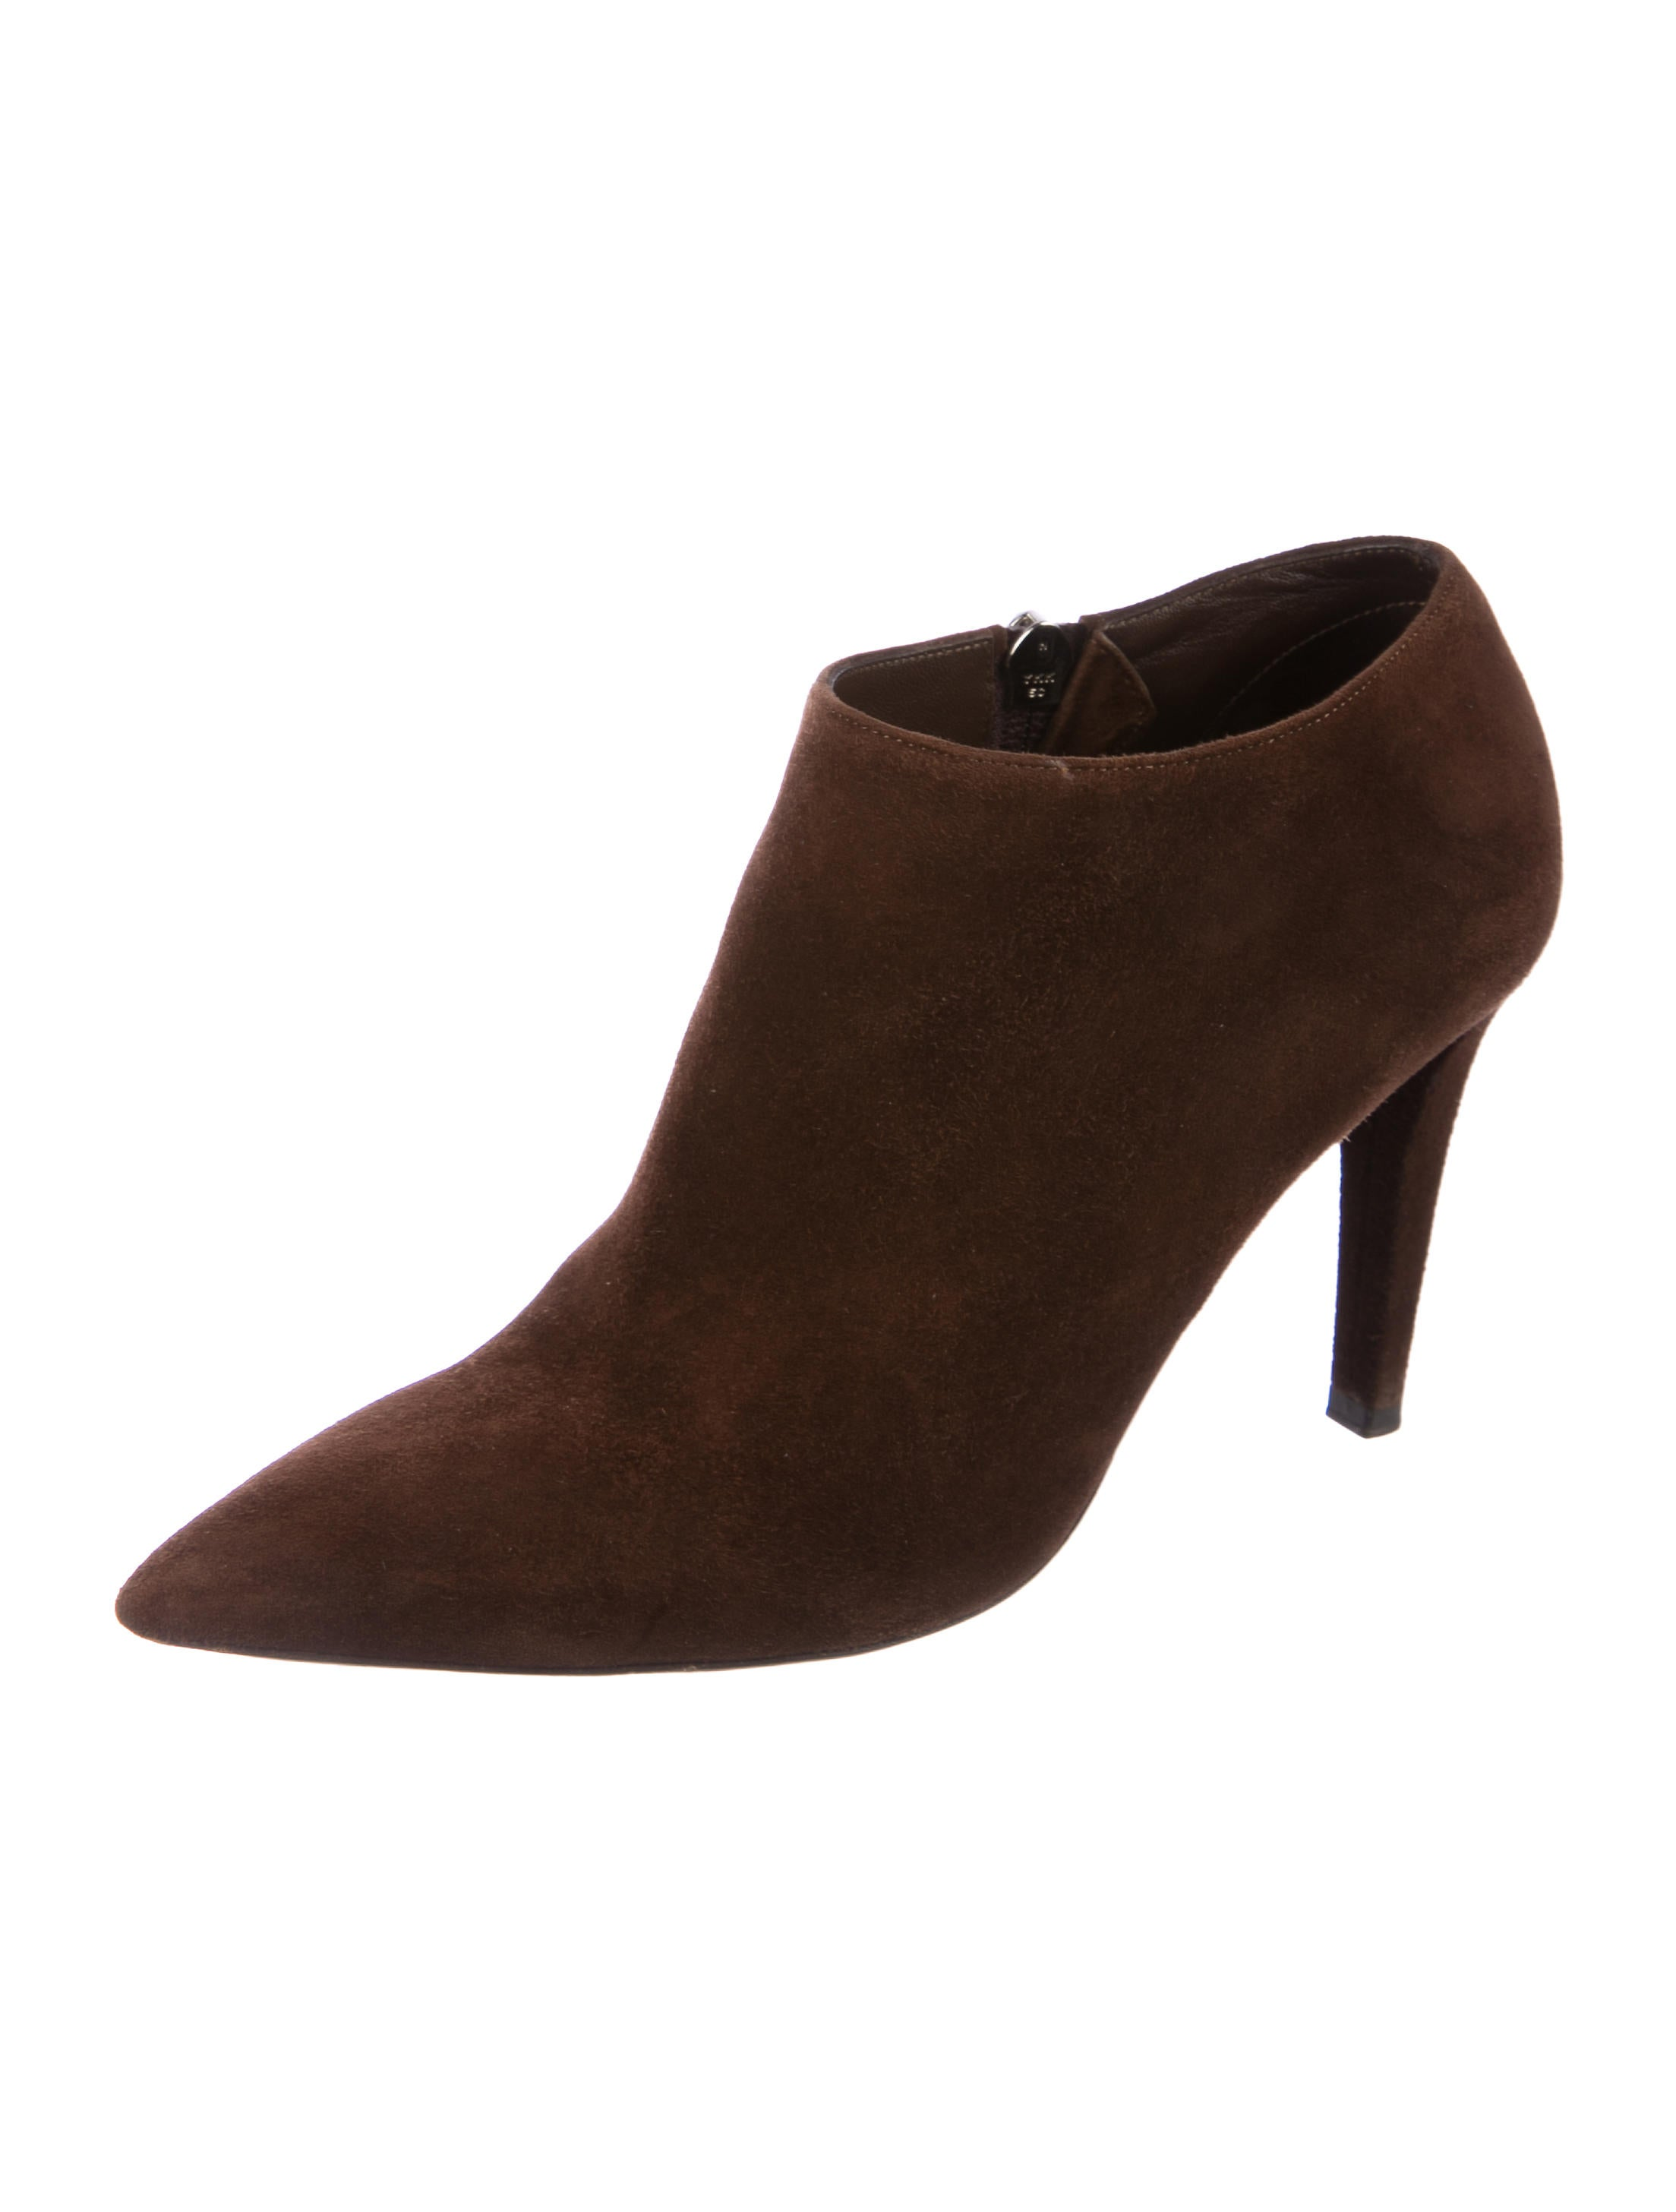 discount really Ralph Lauren Purple Label Suede Pointed-Toe Boots sale best sale sWiF49wSW